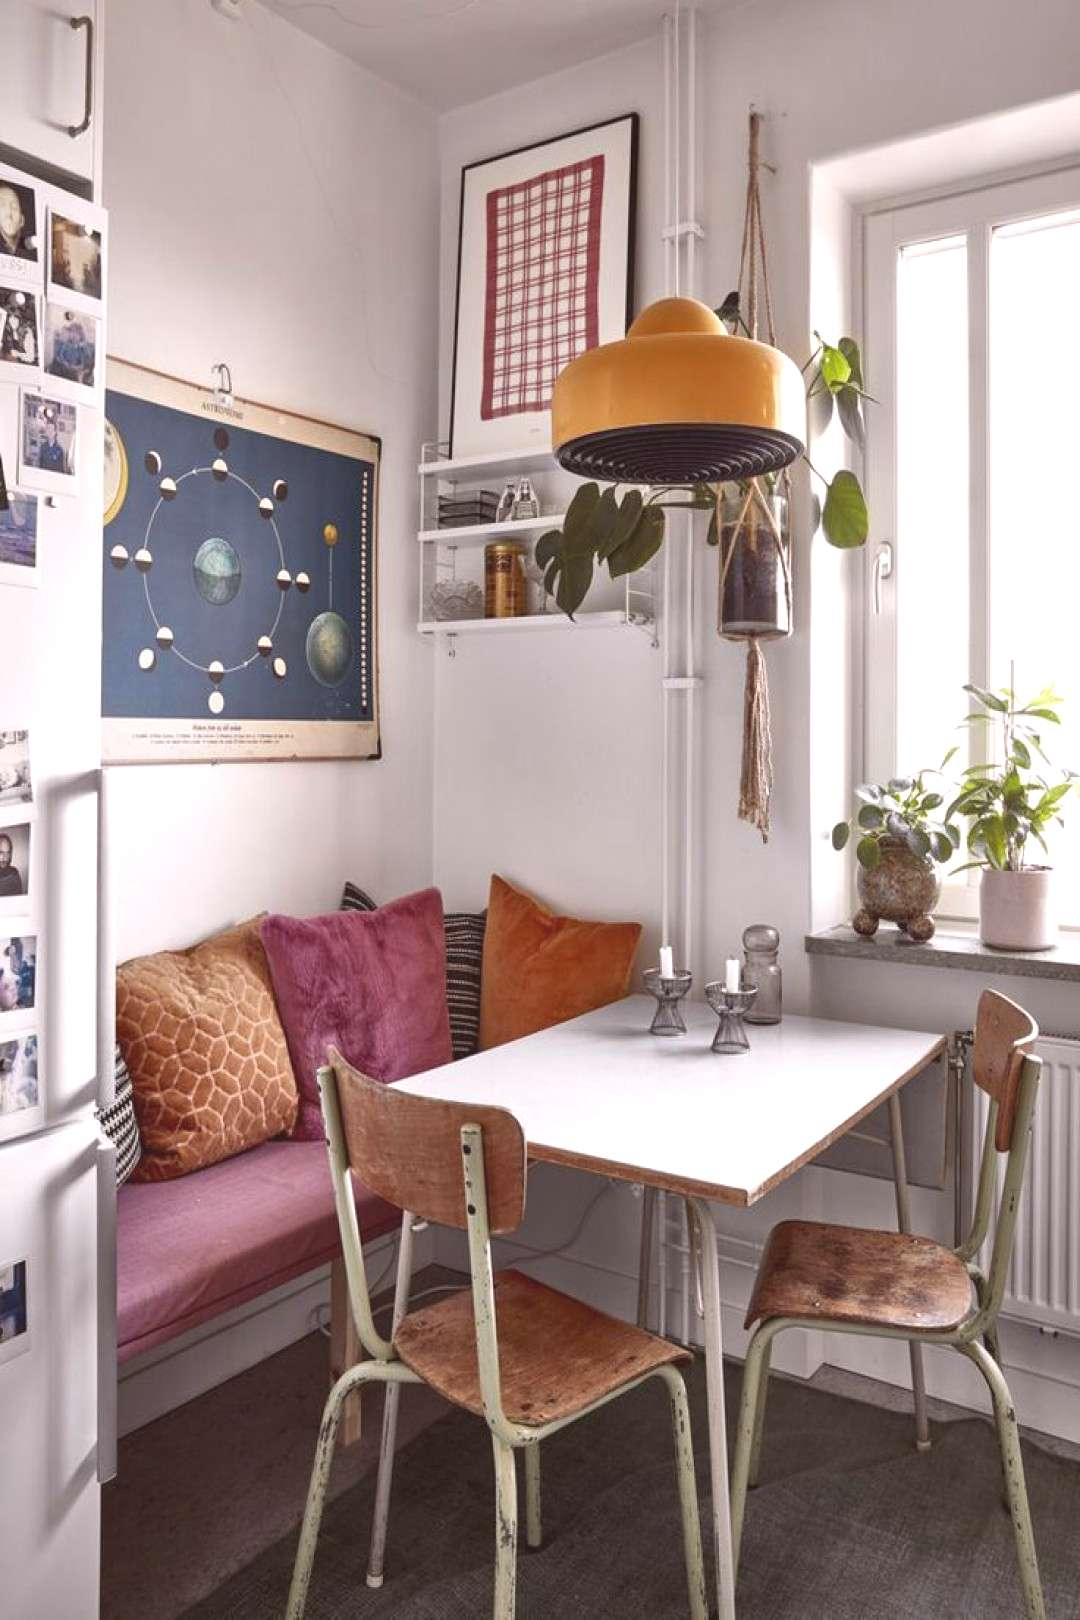 Cozy Textures In A Vintage Apartment in Stockholm — THE NORDROOM Cozy Textures In A Vintage Apart